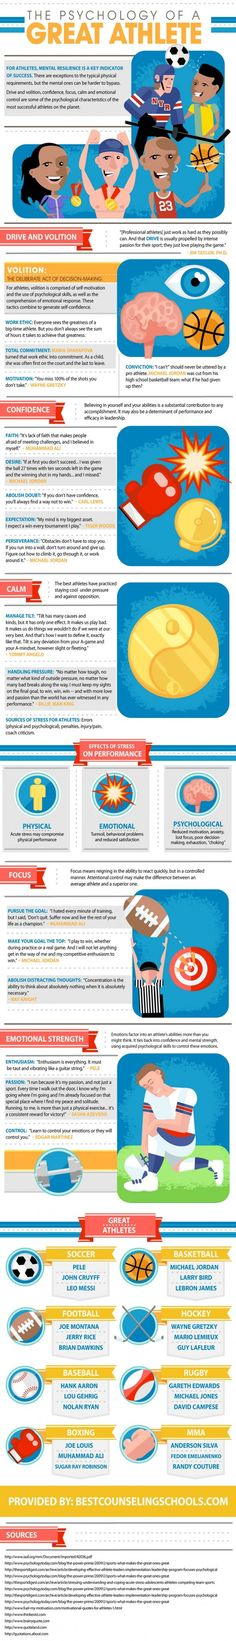 #INFOGRAPHIC: THE PSYCHOLOGY OF A GREAT ATHLETE